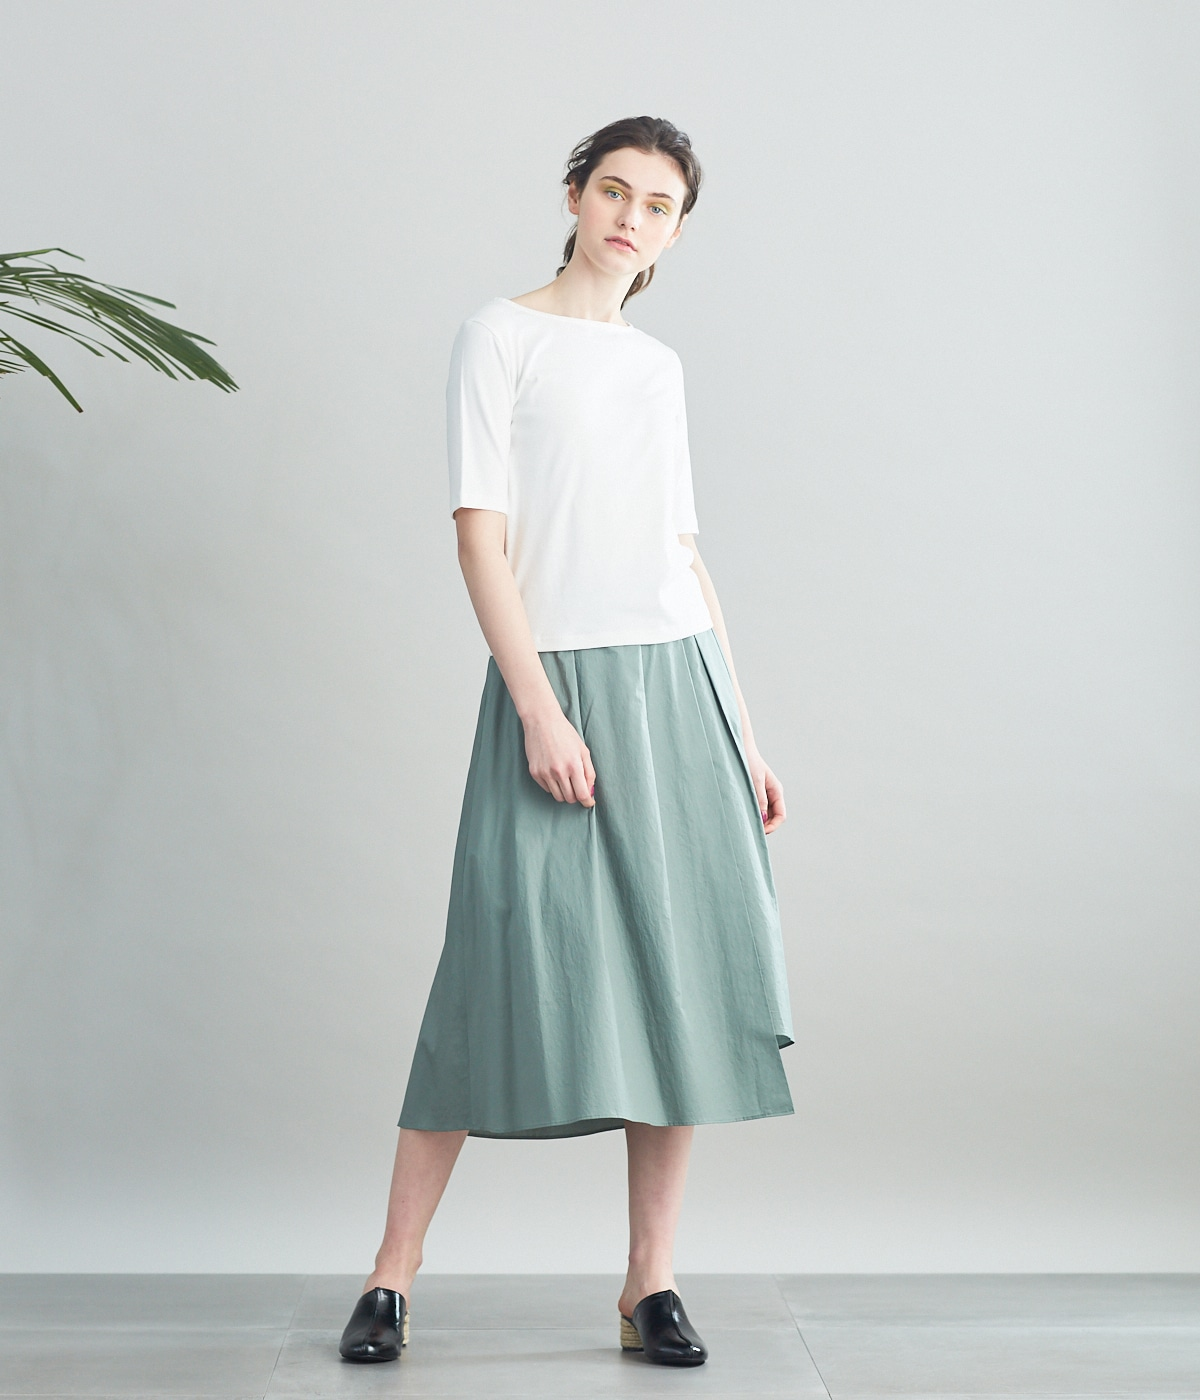 EARLY SUMMER SKIRT STYLE